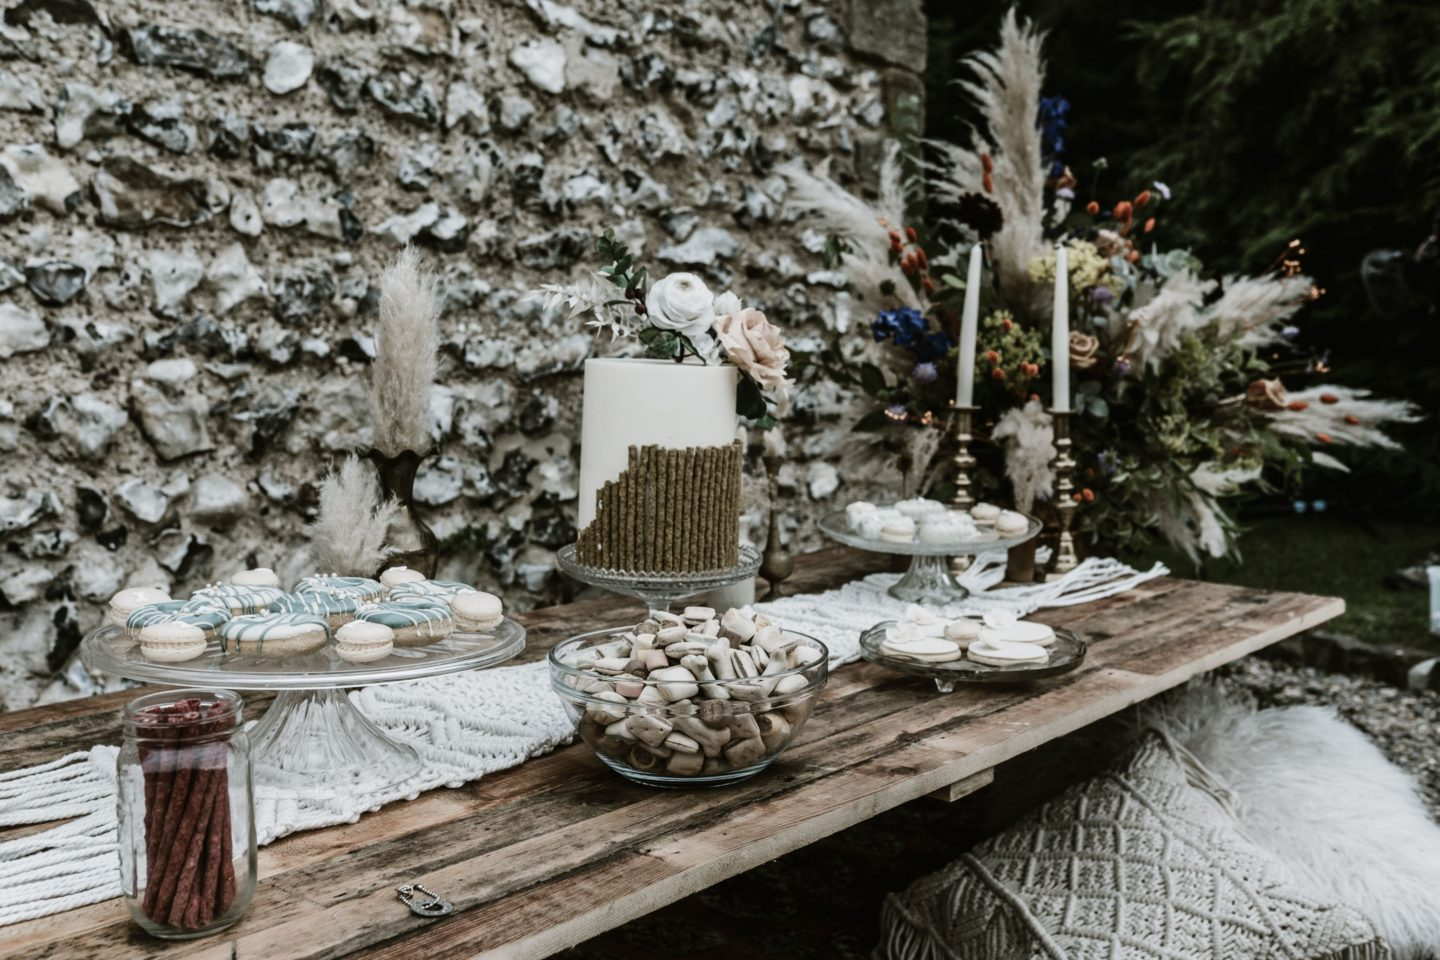 Dog Wedding With Doggy Ice Cream Reception at The Lost Village of Dode Kent